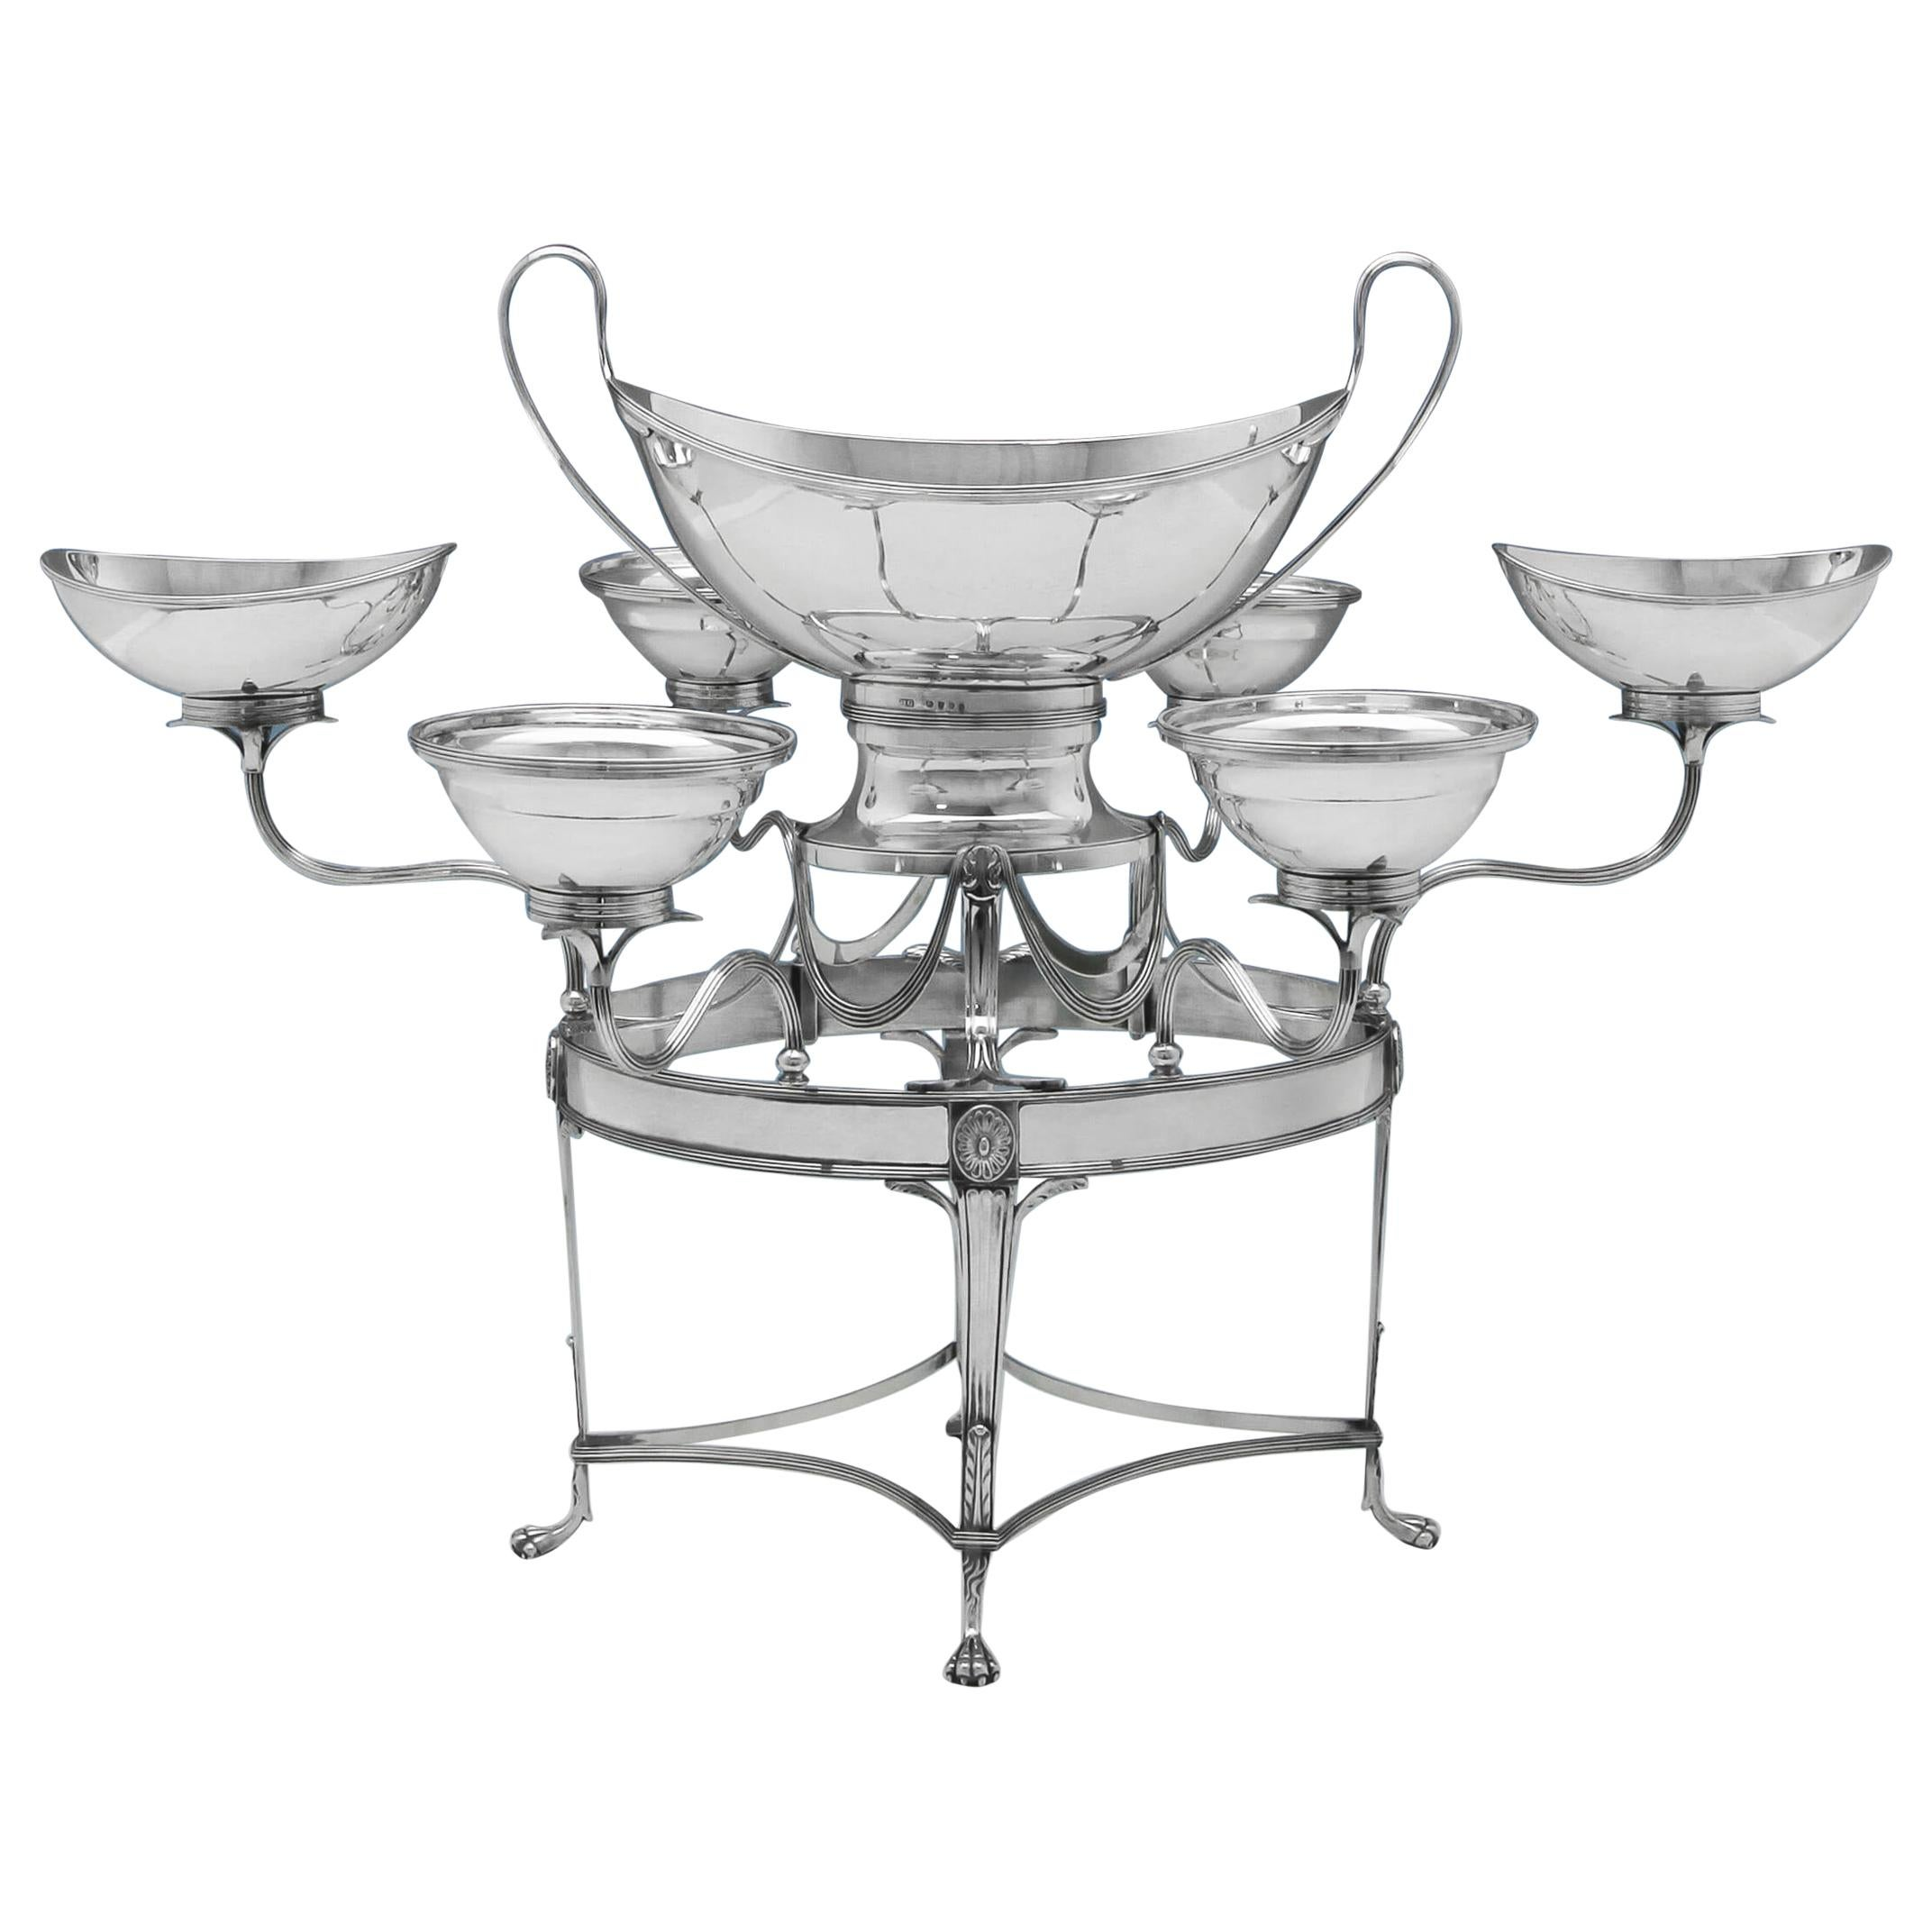 Neoclassical George III Antique Sterling Silver Epergne or Centrepiece from 1793